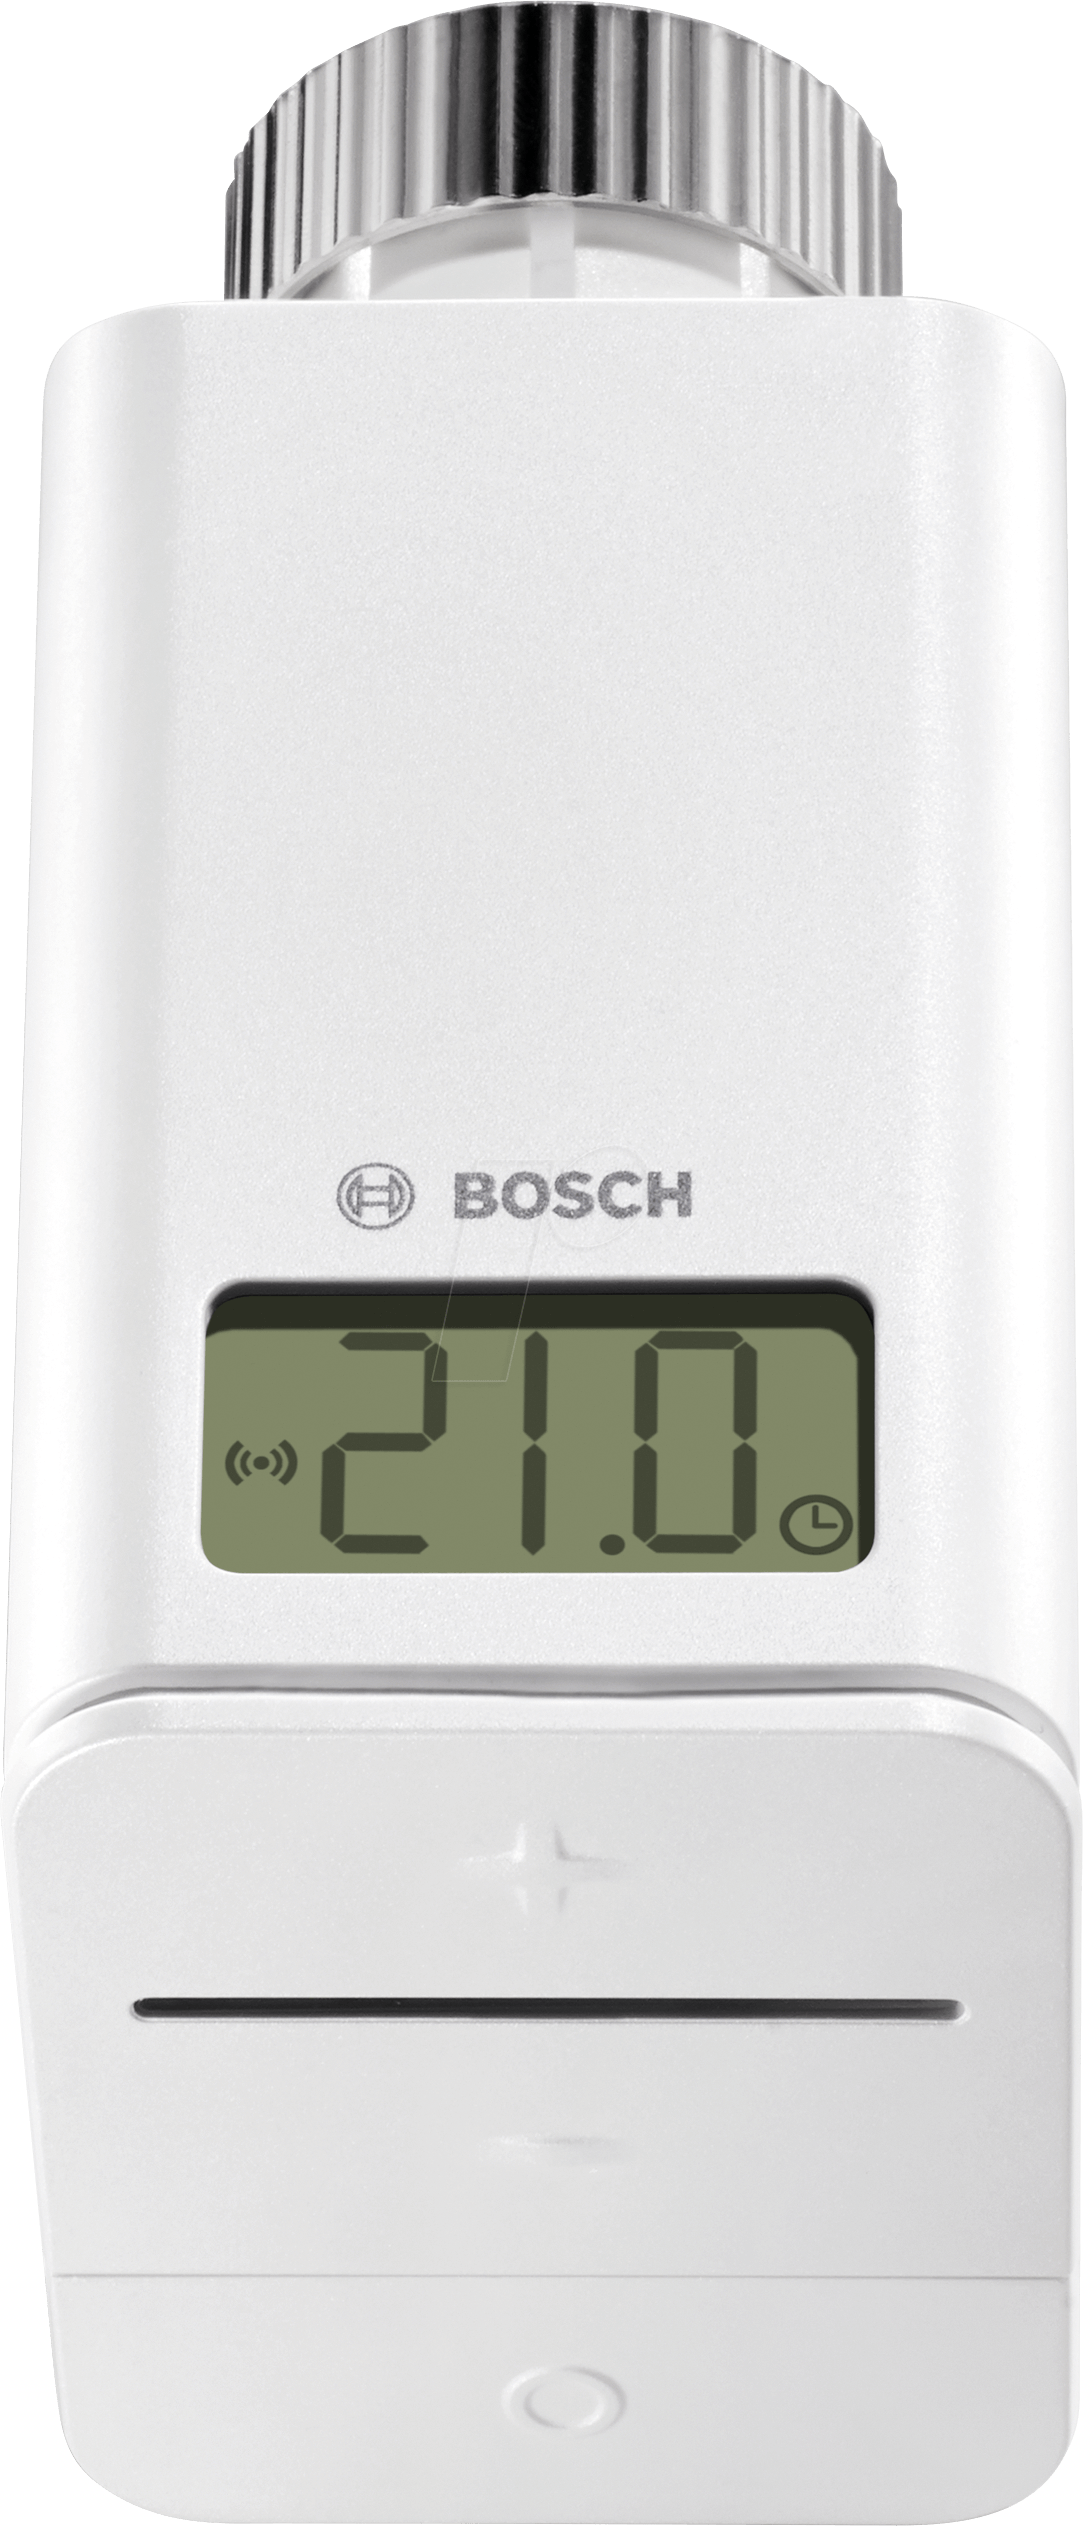 bosch 8752 heizk rper thermostat smart home bei reichelt elektronik. Black Bedroom Furniture Sets. Home Design Ideas